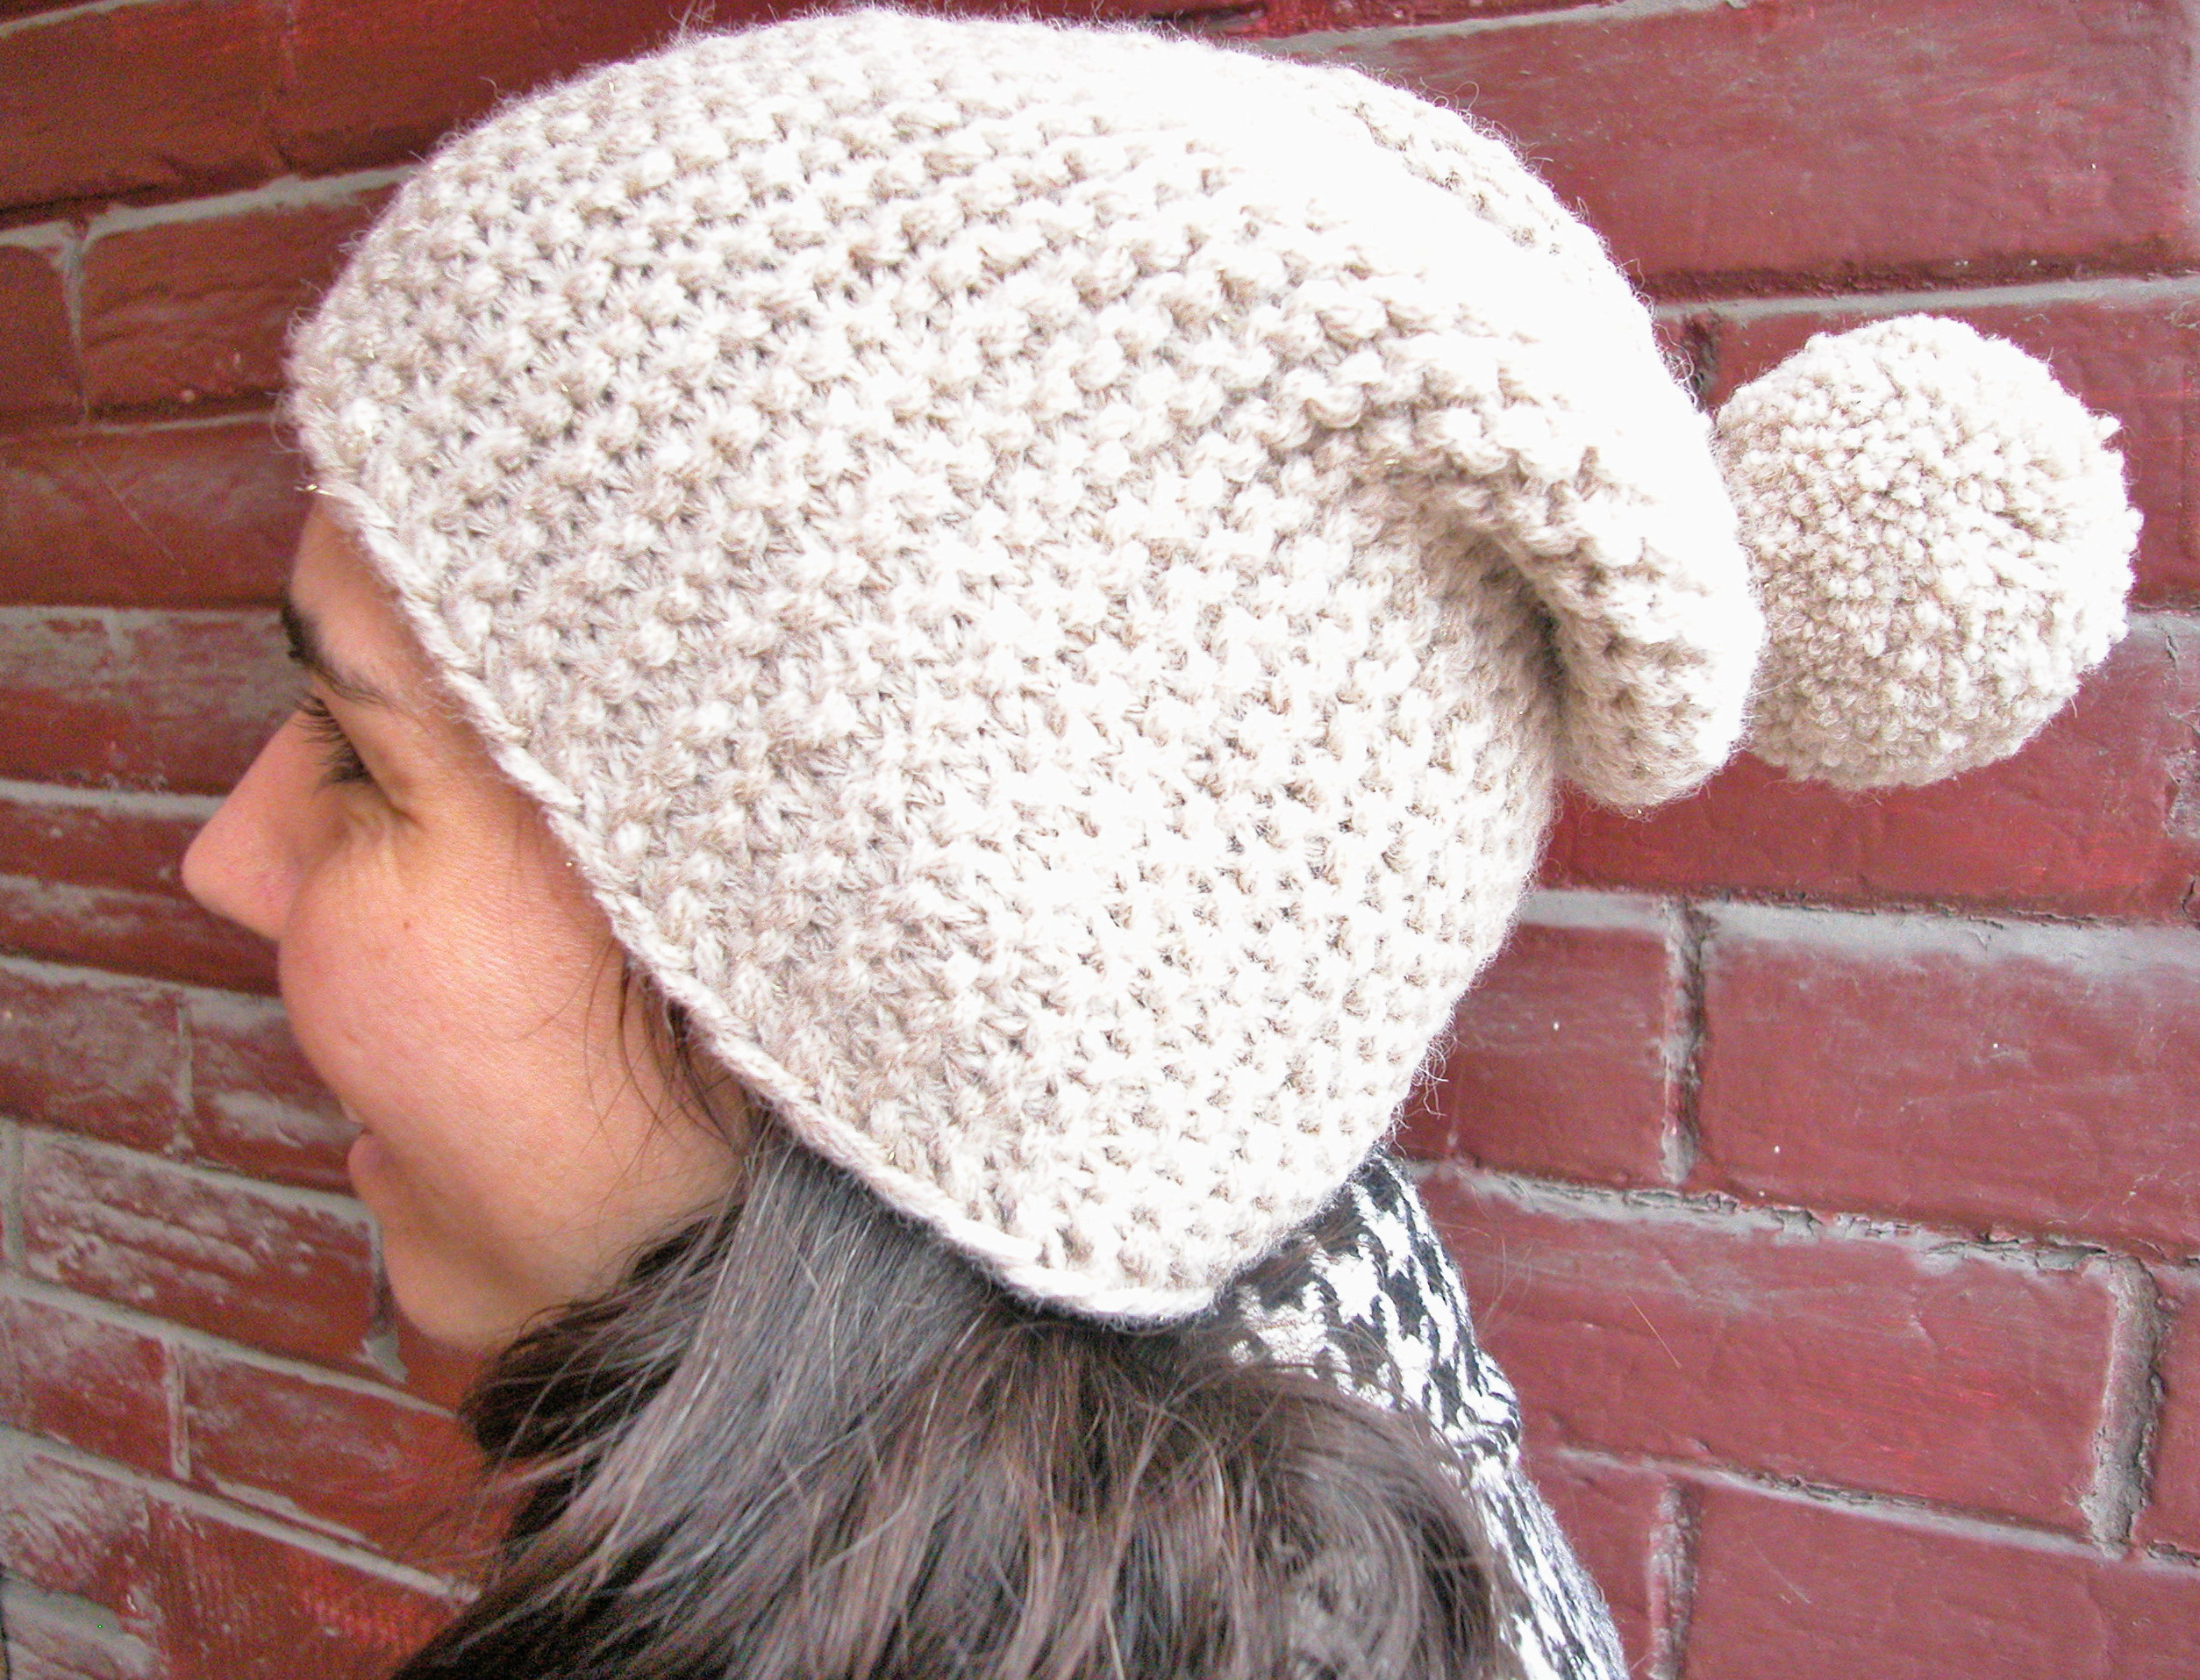 a5396bab6f3 This is a brand new pattern from the Knit Cafe. You can find it on Ravelry  and purchase it there. It is made with two strands of Berroco Flicker held  ...